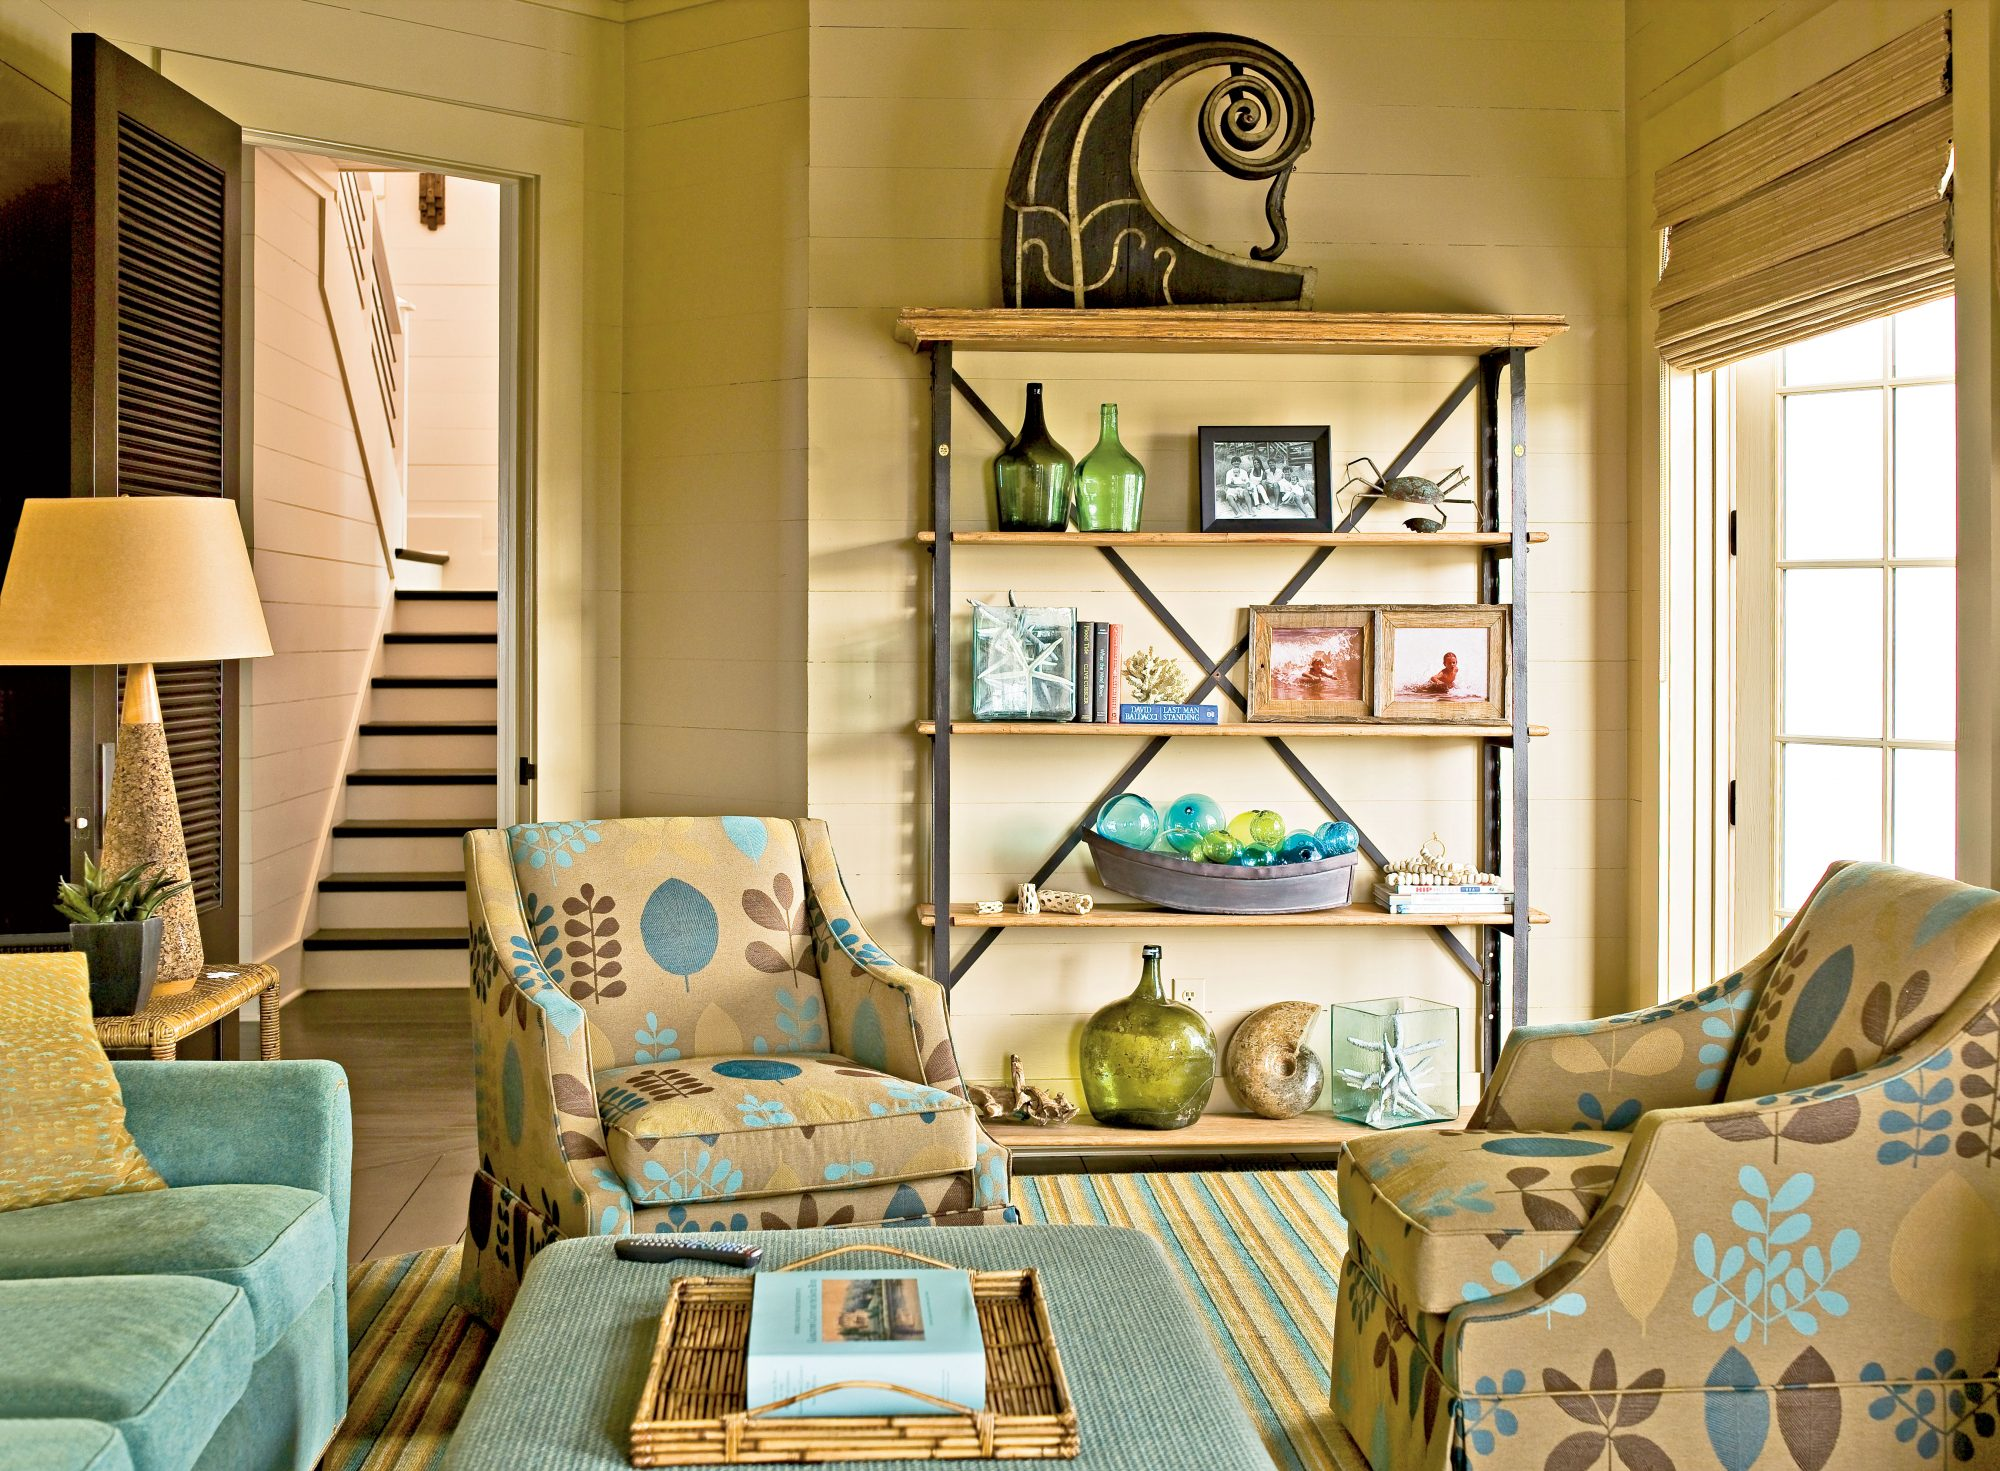 Pump up the excitement in your den with a quirky print and lighthearted decorative touches. As long as you continue with neutrals and natural elements, the effect will still be relaxed. The accessories, such as the glass bottles and balls lining the shelf, have a just-washed-up-on-the-shore feel.